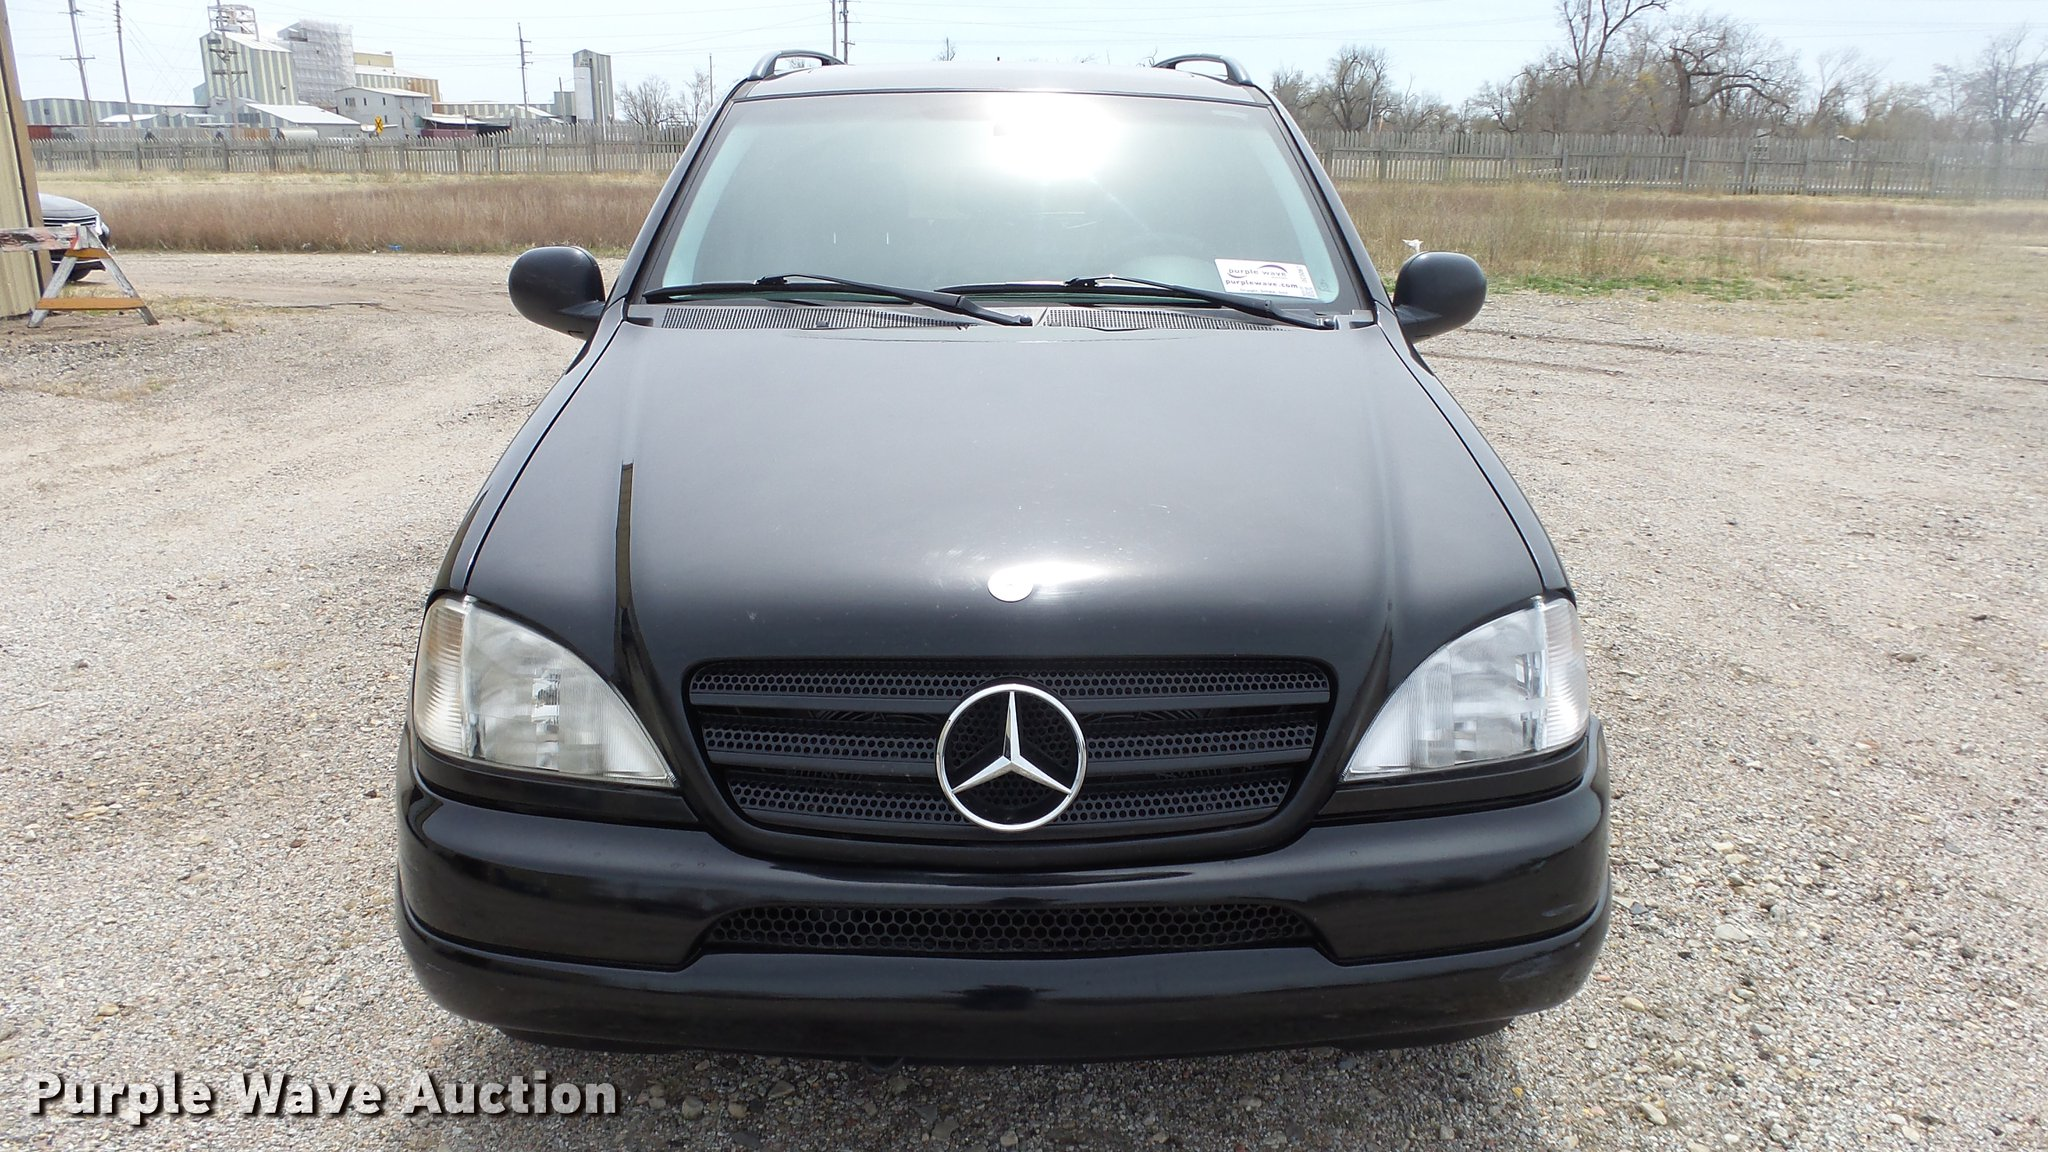 1999 Mercedes Benz Ml320 Suv Item Dc3067 Sold May 1 Gov Full Size In New Window